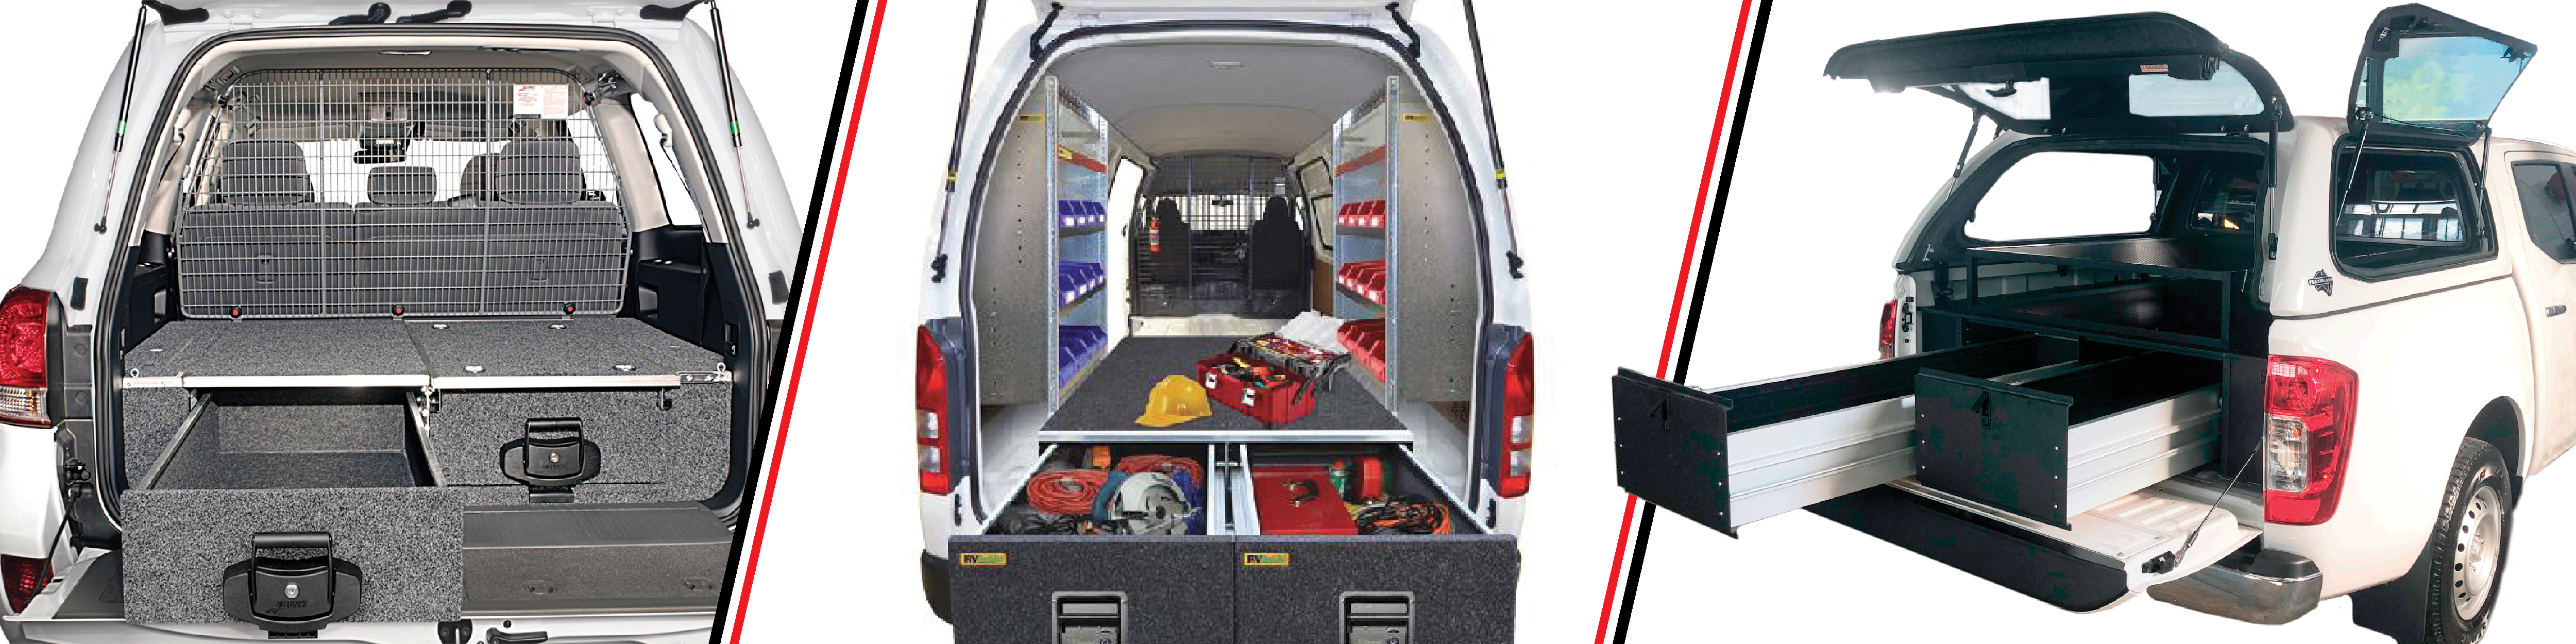 RFM 4x4 199 Logan Road Woolloongabba Image Drawer Systems   RFM4x4 Drawer Systems 1   Recreation Fleet and Mining